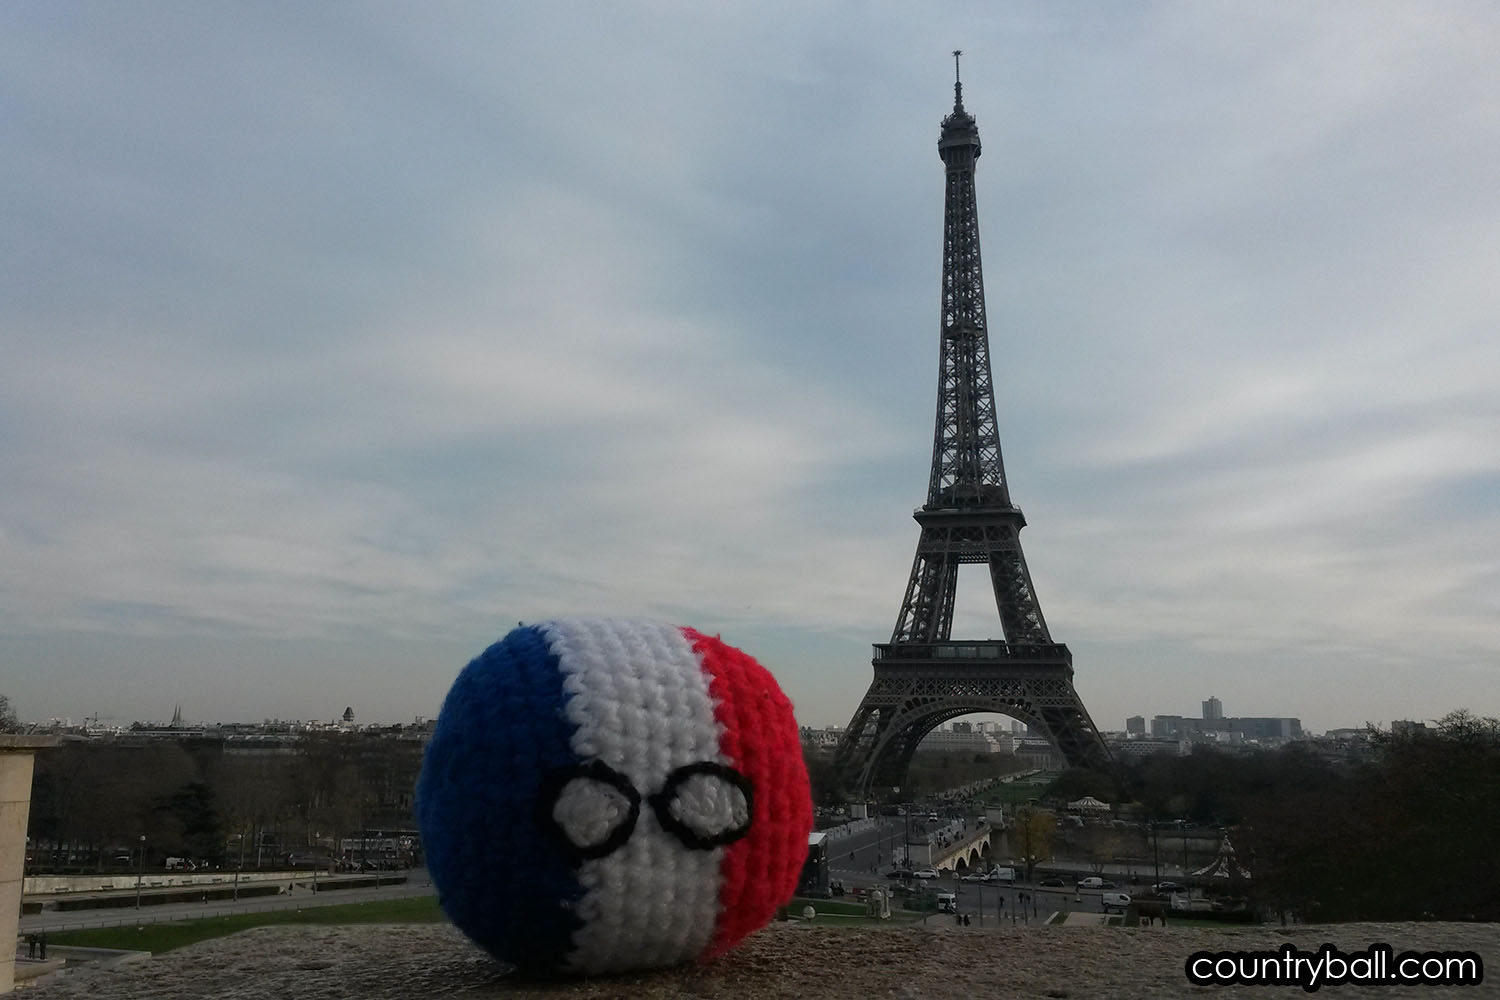 Franceball at the Eiffel Tower